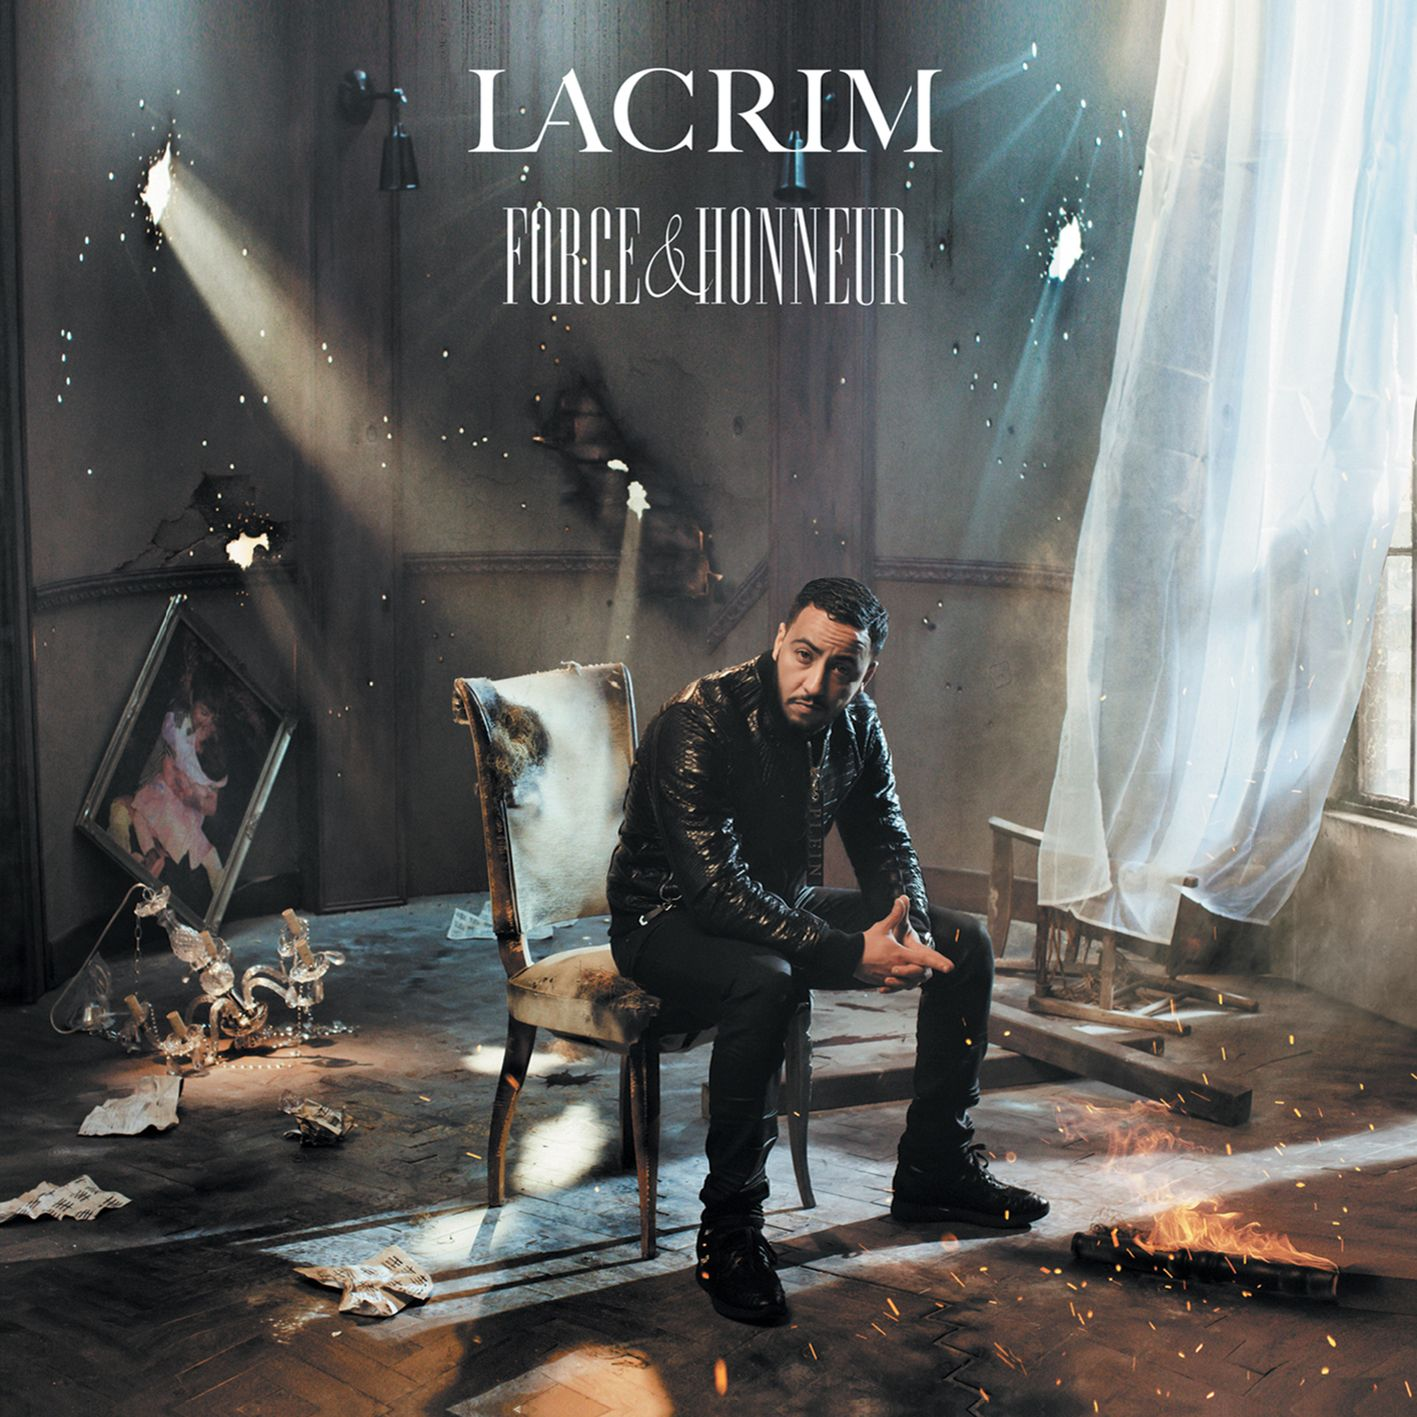 Lacrim - Force & Honneur album cover